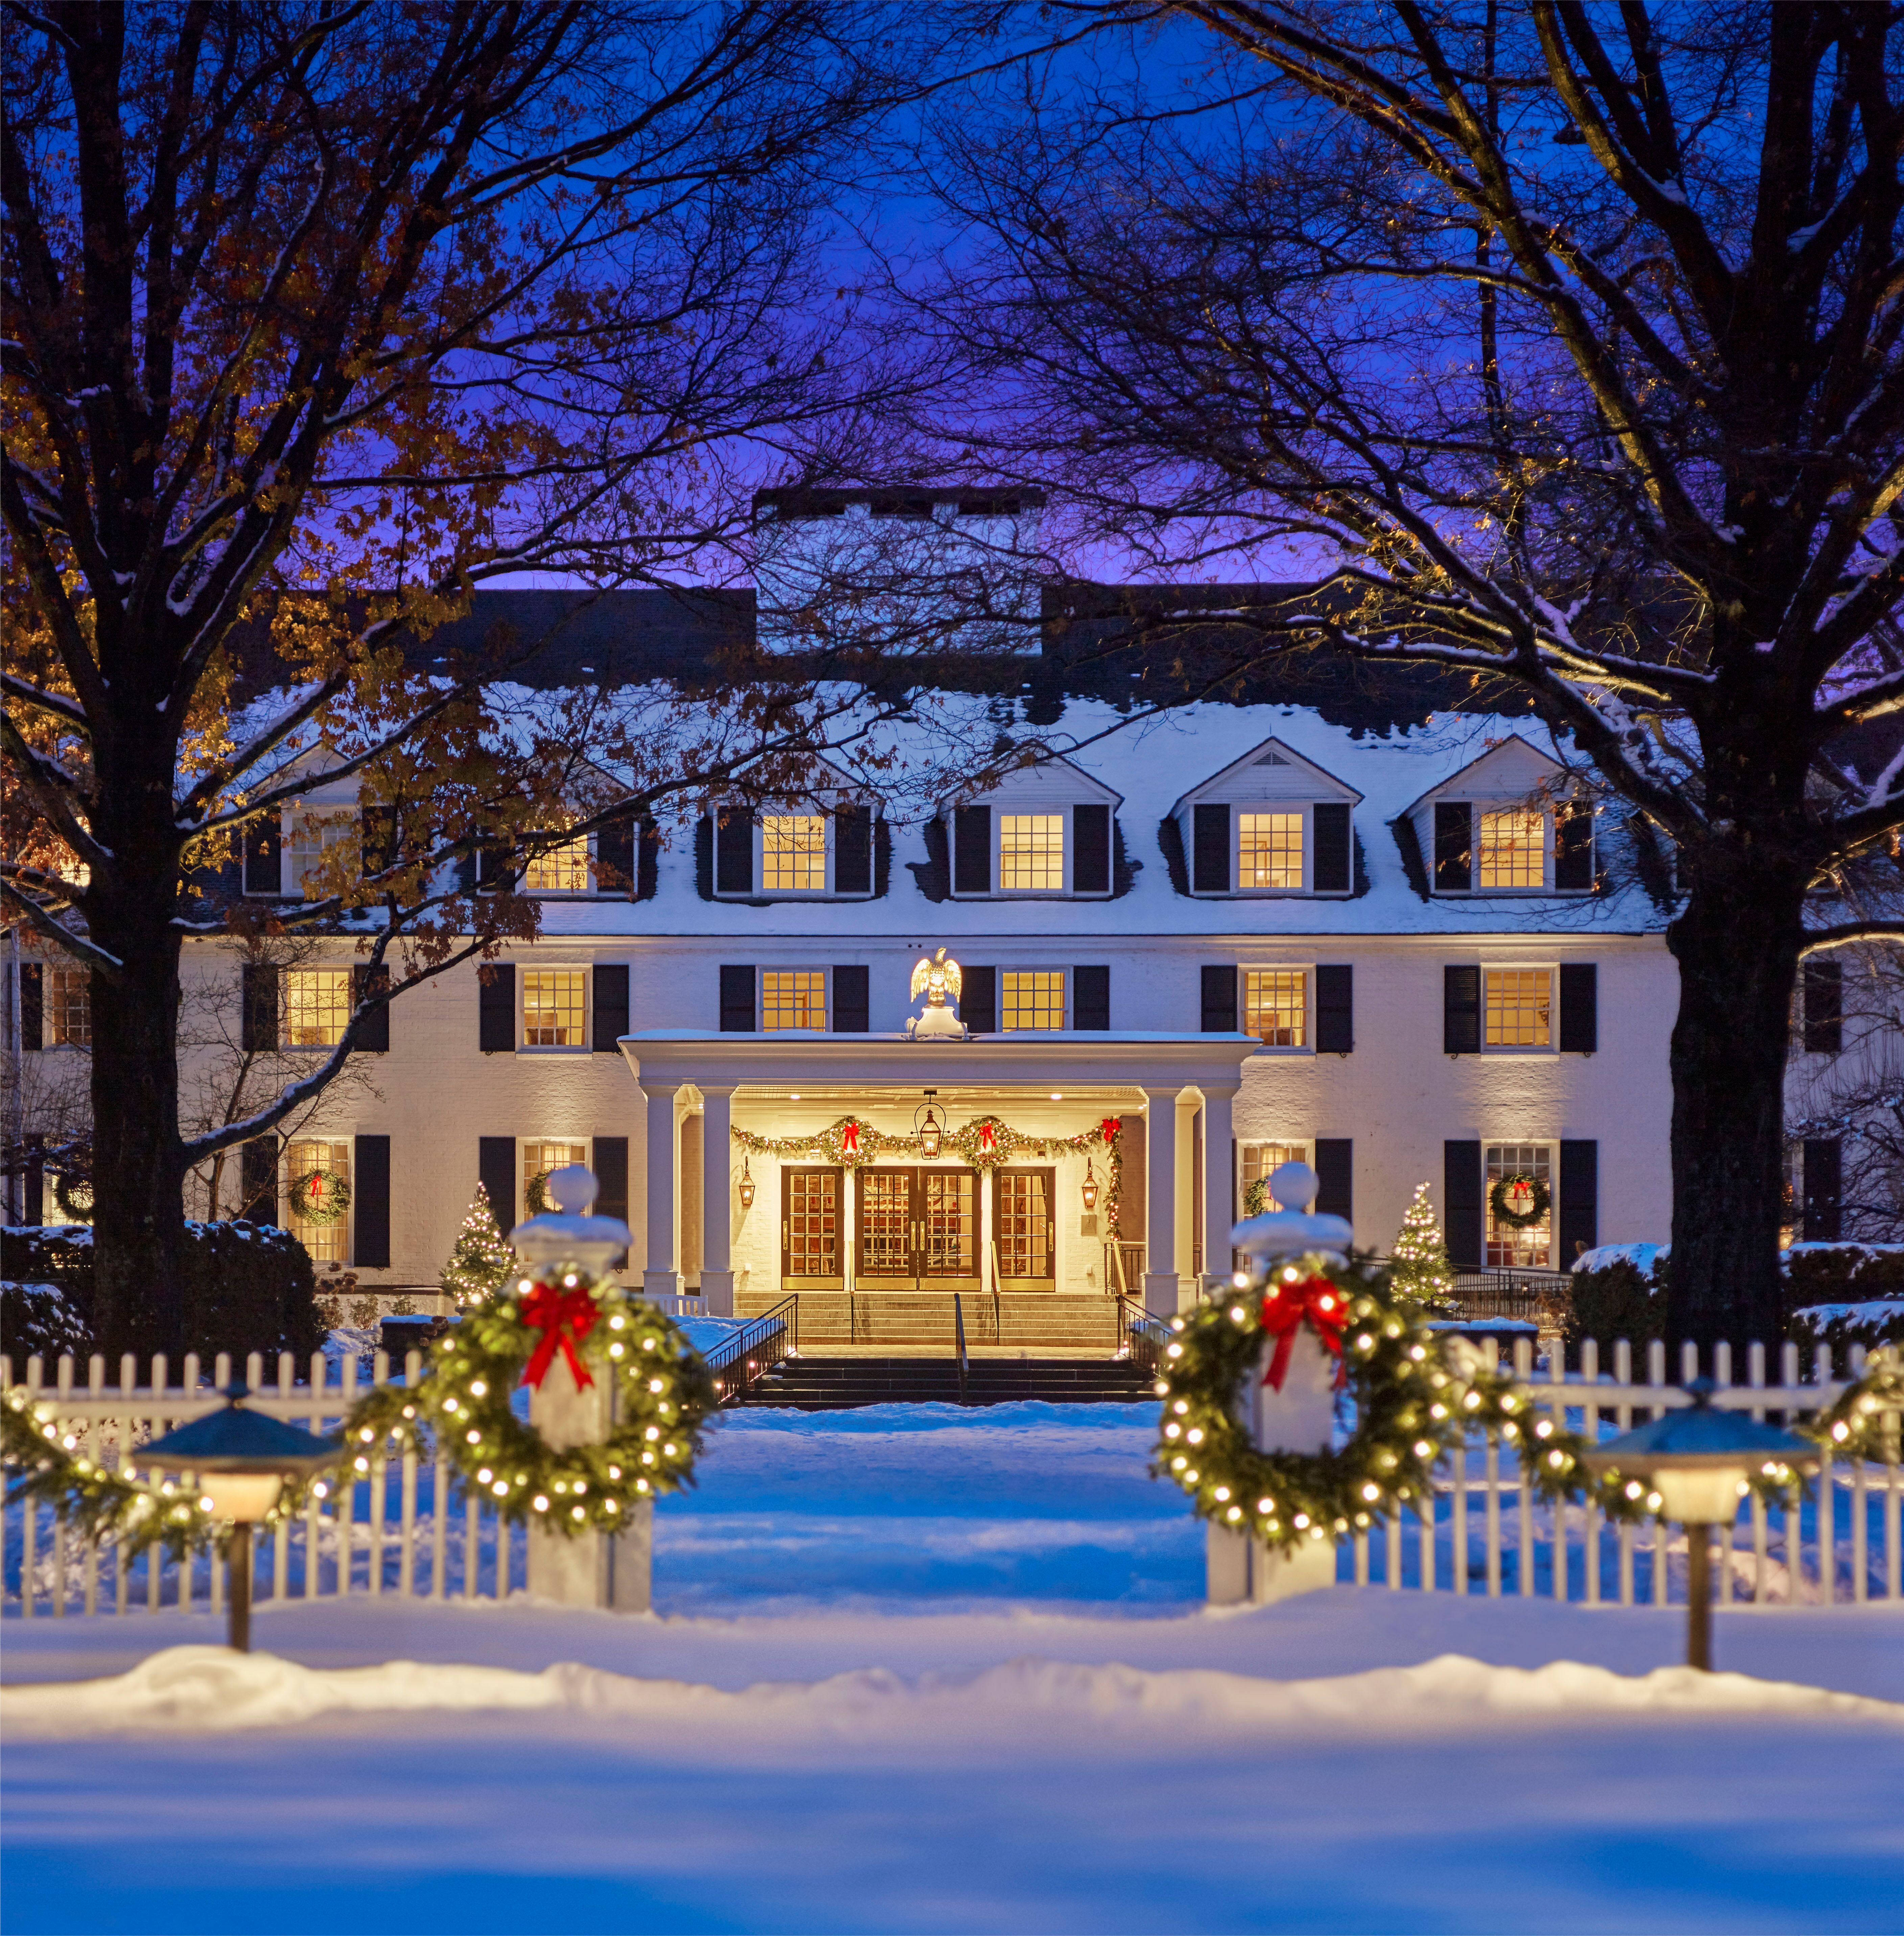 Christmas In Vermont 2021 Christmas In Vermont Things To Do In Woodstock Vermont For Christmas